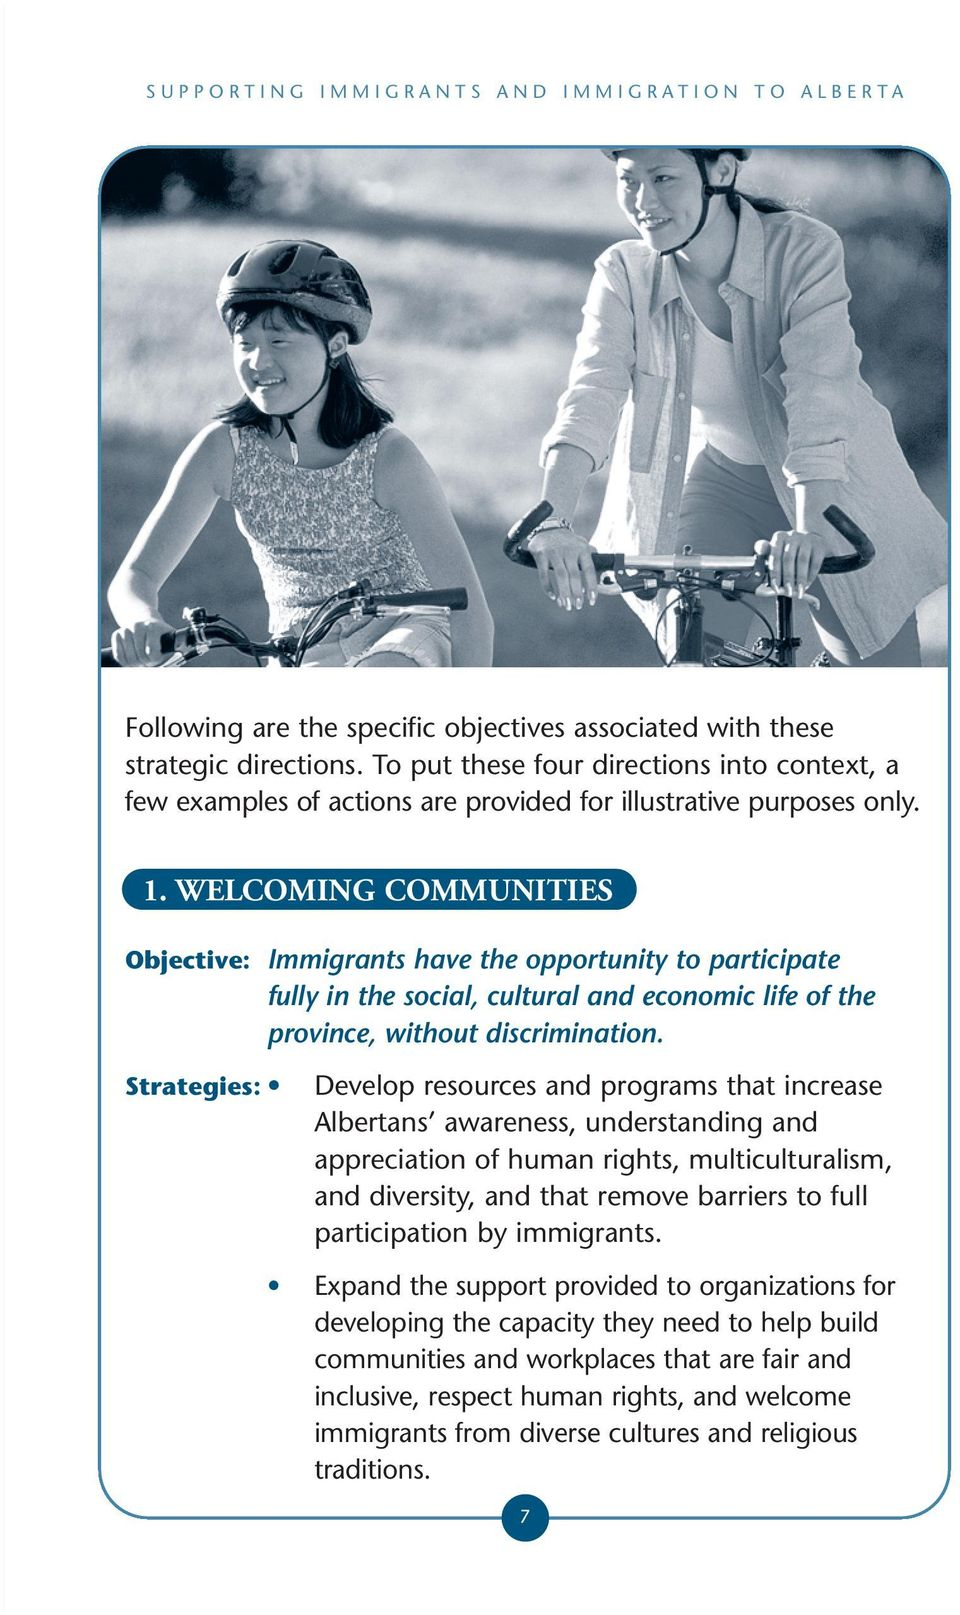 Strategies: Develop resources and programs that increase Albertans awareness, understanding and appreciation of human rights, multiculturalism, and diversity, and that remove barriers to full